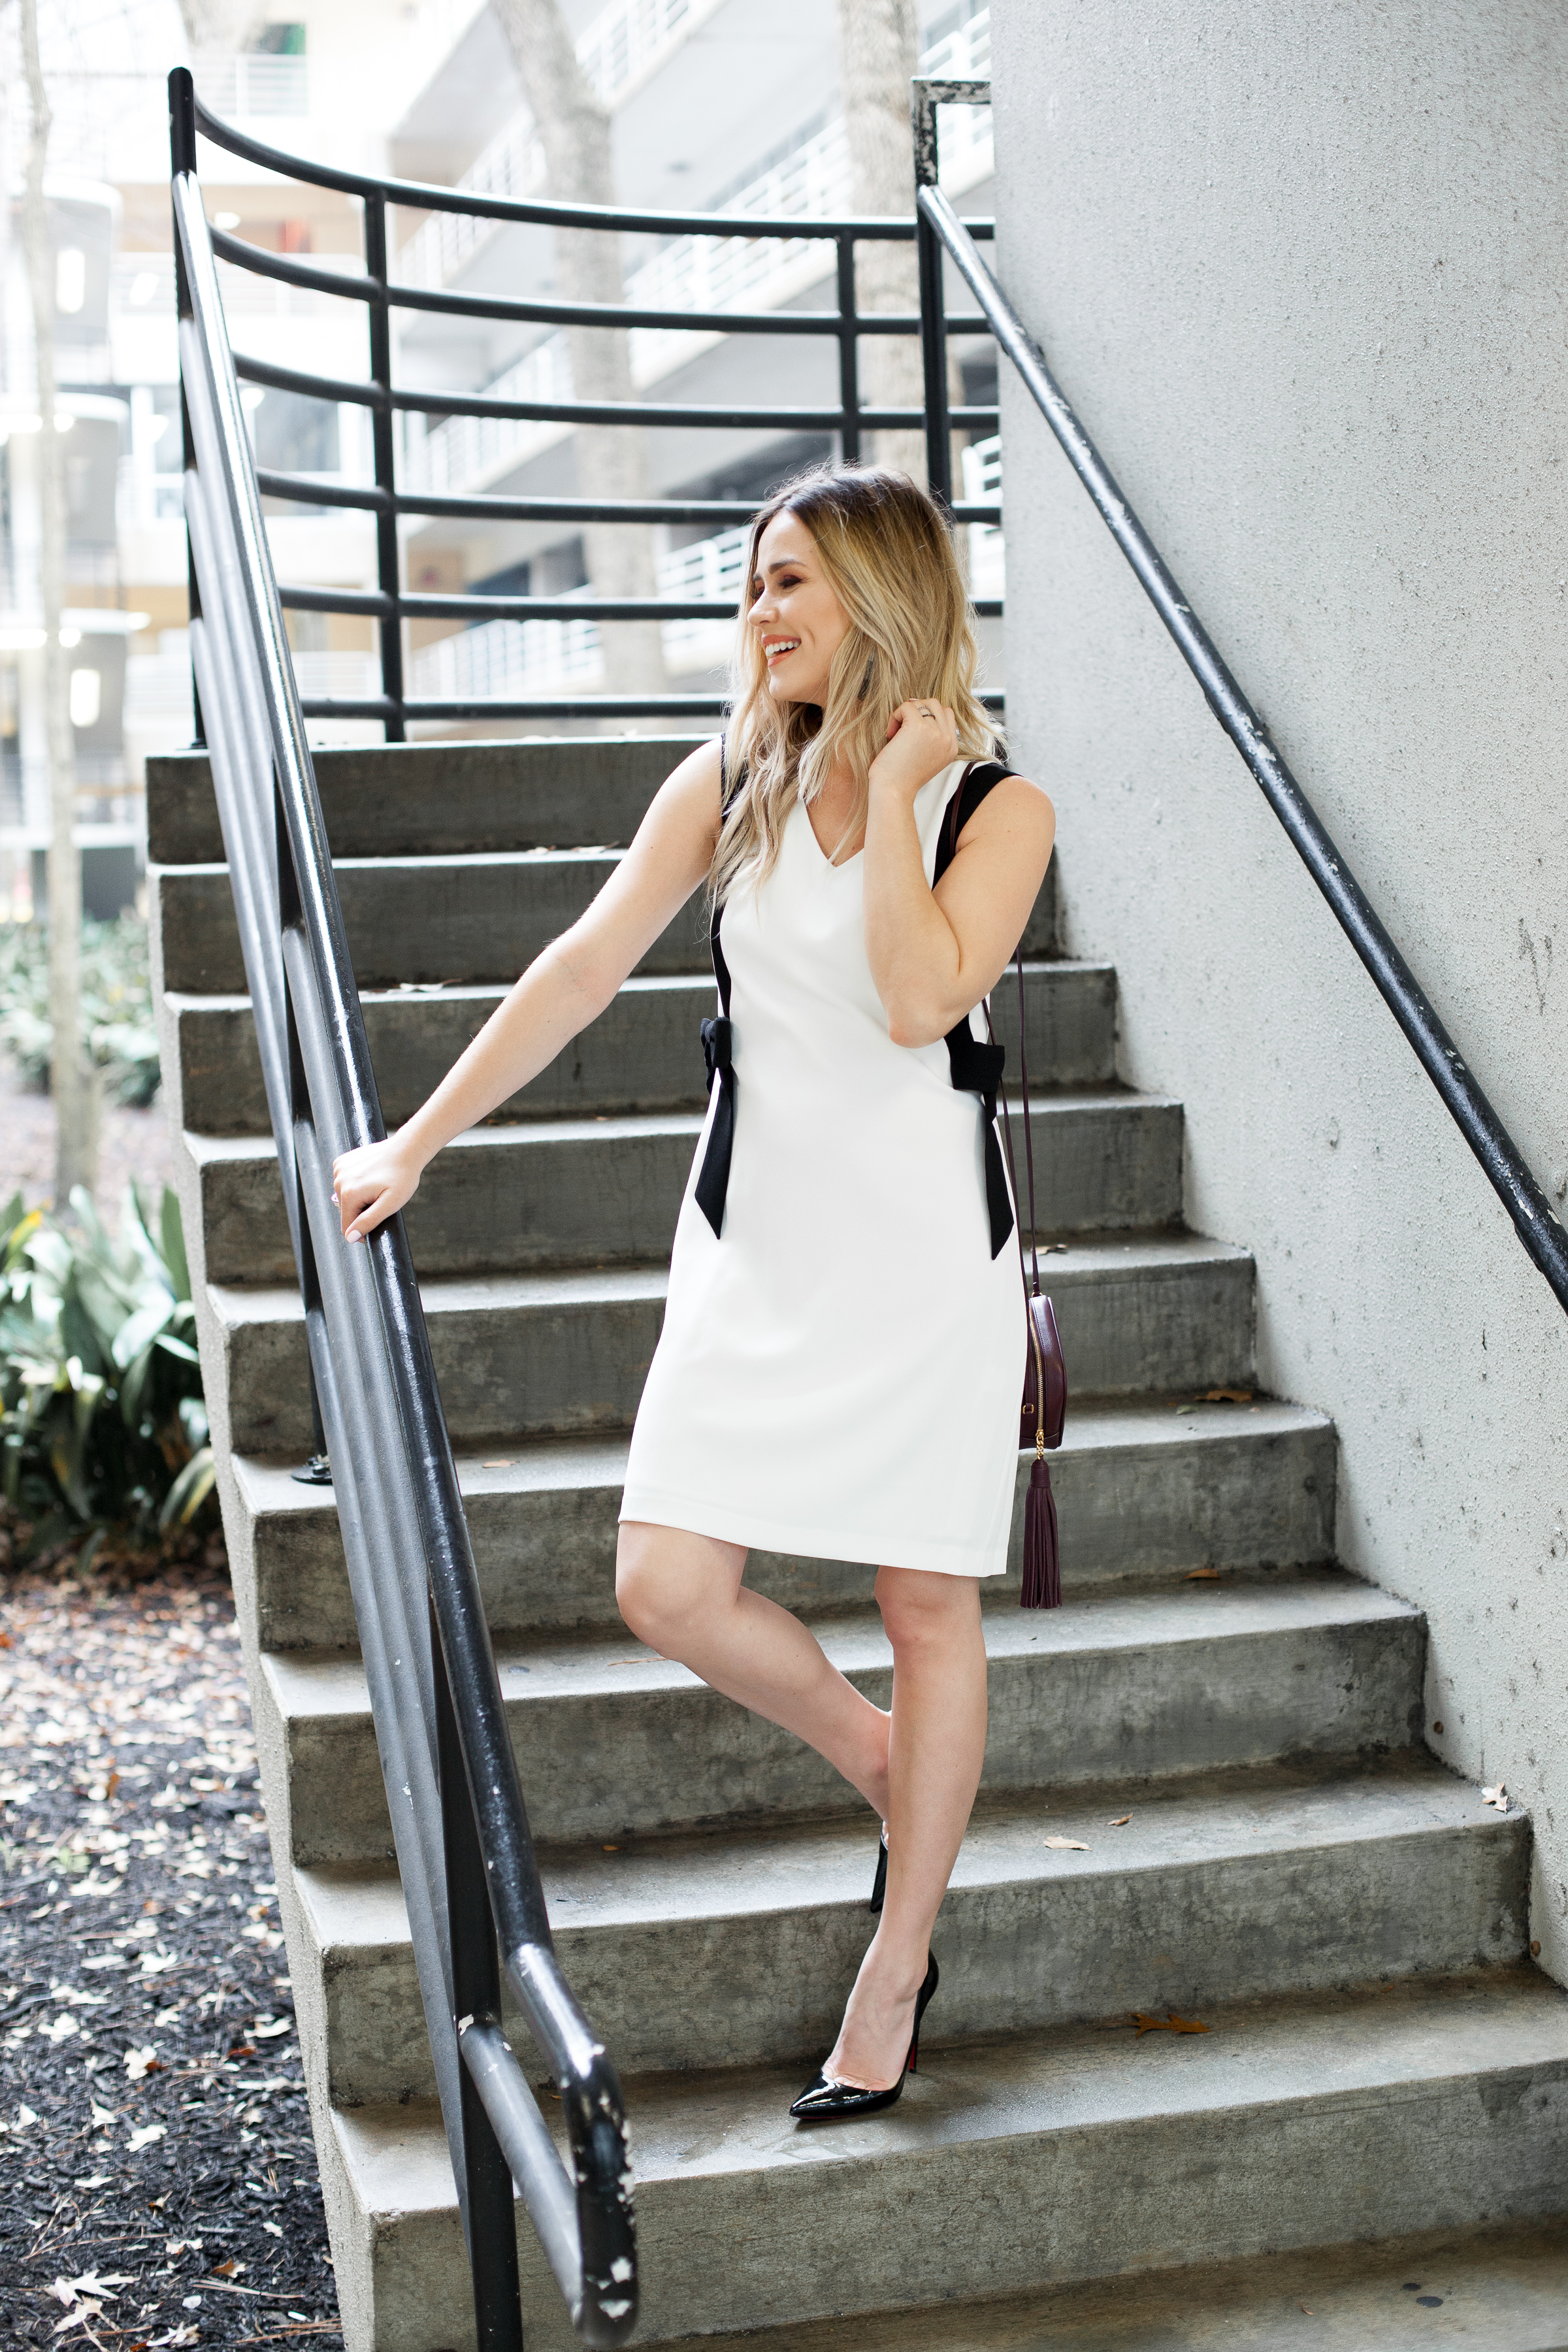 Shift dress   Feminine bow dress   Christian Louboutins   YSL crossbody bag   Date night outfit   Uptown with Elly Brown